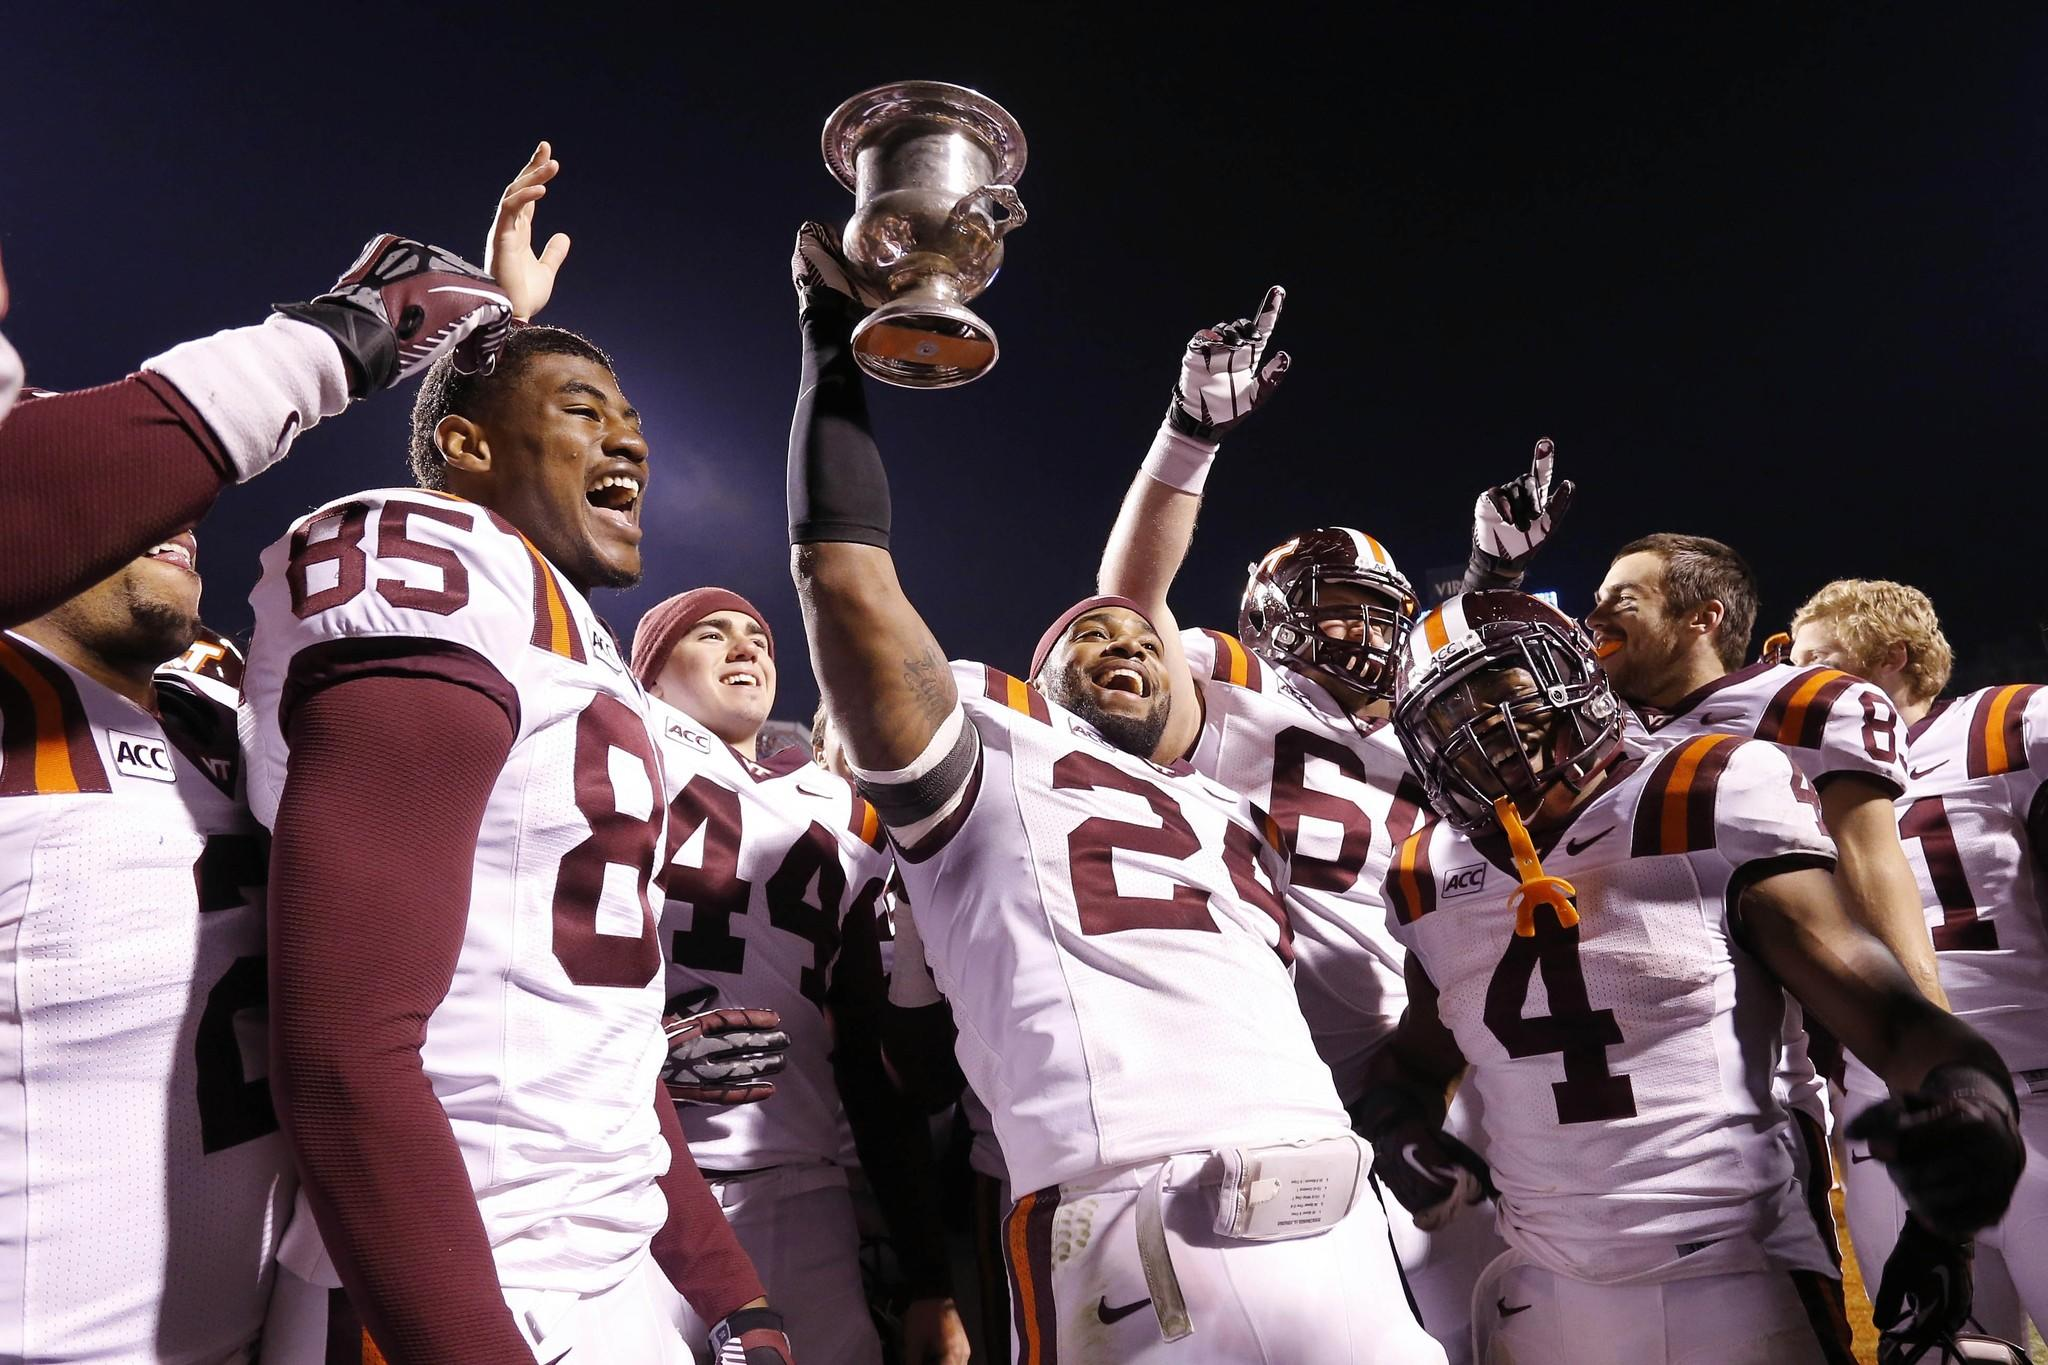 Nov 30, 2013; Charlottesville, VA, USA; Virginia Tech Hokies linebacker Tariq Edwards (24) holds the Commonwealth Cup while celebrating with teammates after their game against the Virginia Cavaliers at Scott Stadium. The Hokies won 16-6. Mandatory Credit: Geoff Burke-USA TODAY Sports ORG XMIT: USATSI-136404